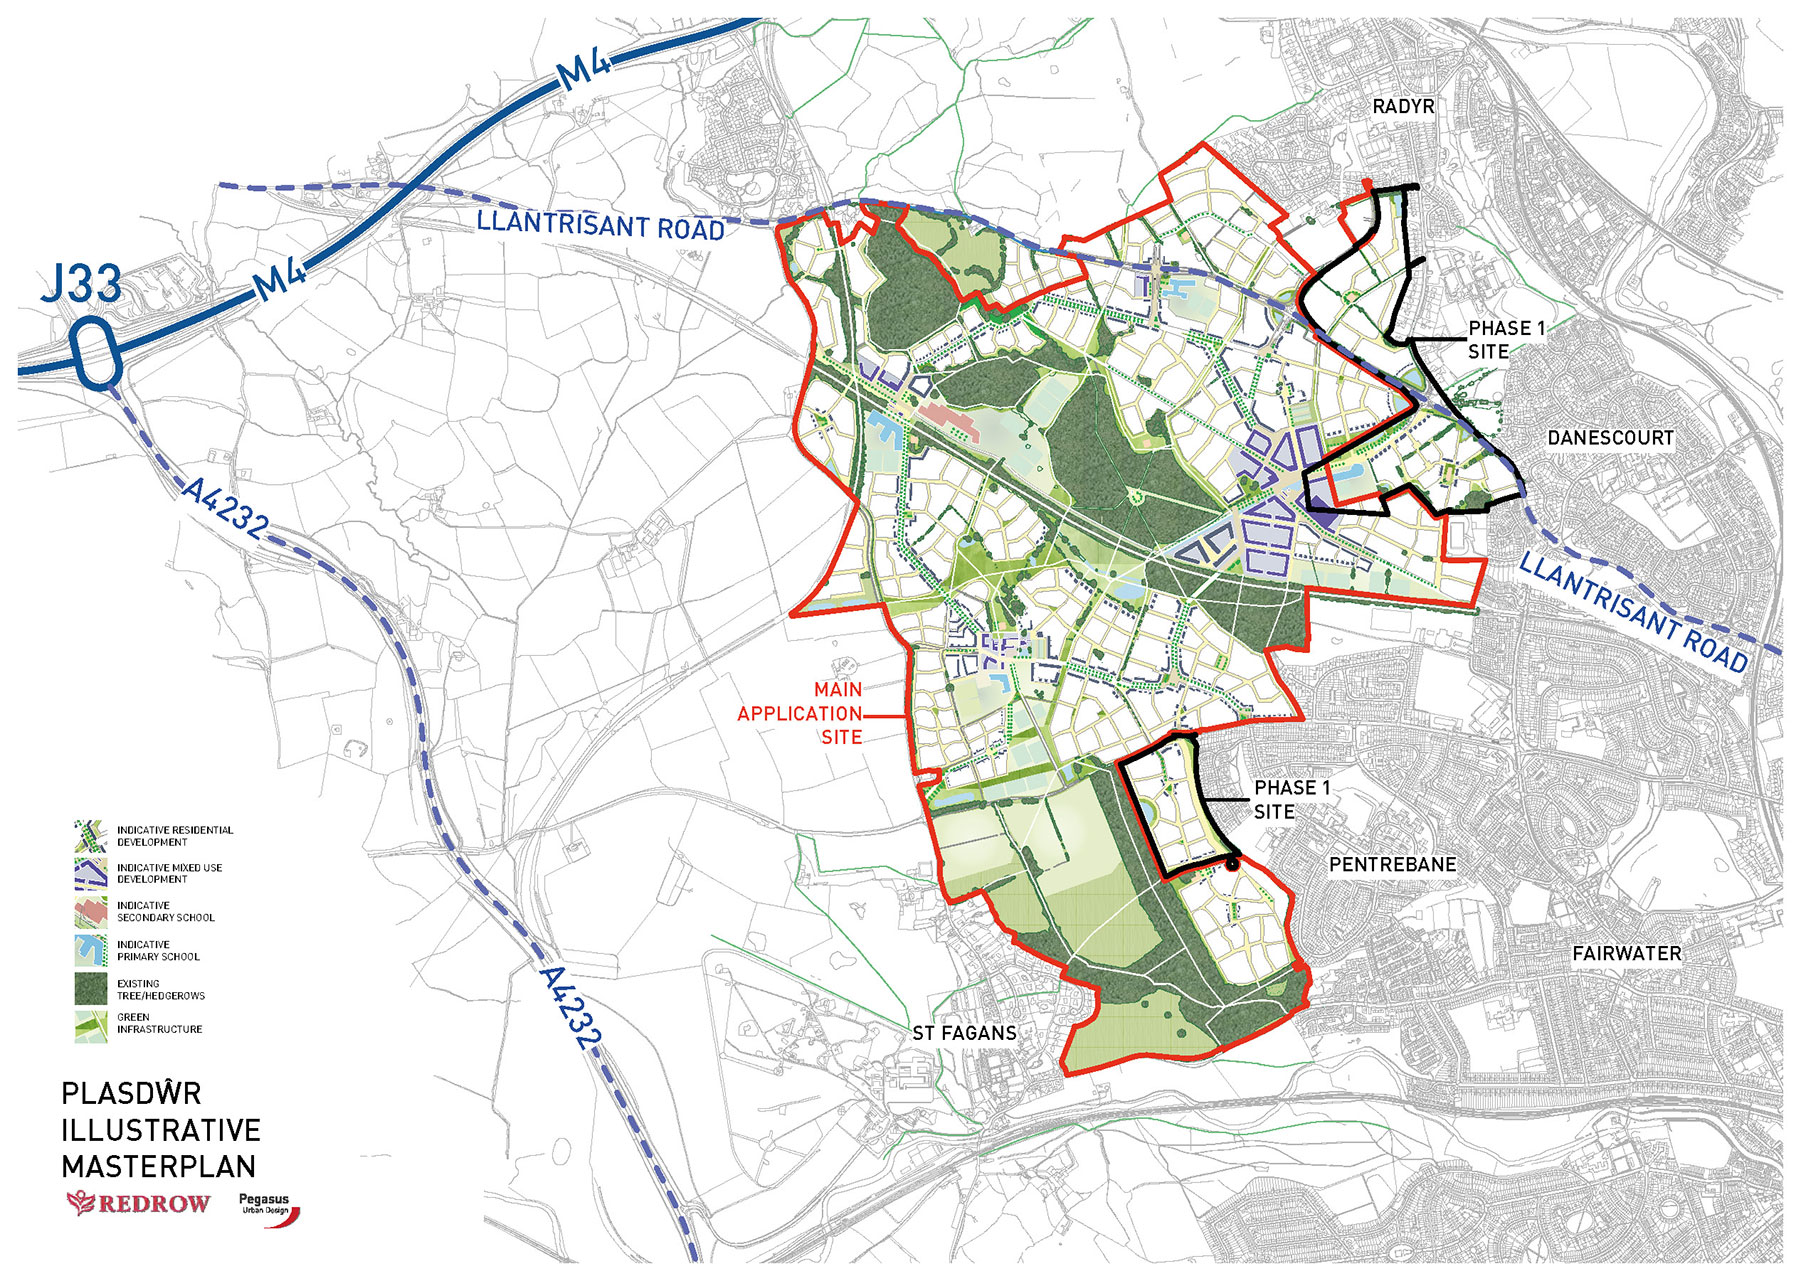 New garden city proposed for Cardiff Plasdwr